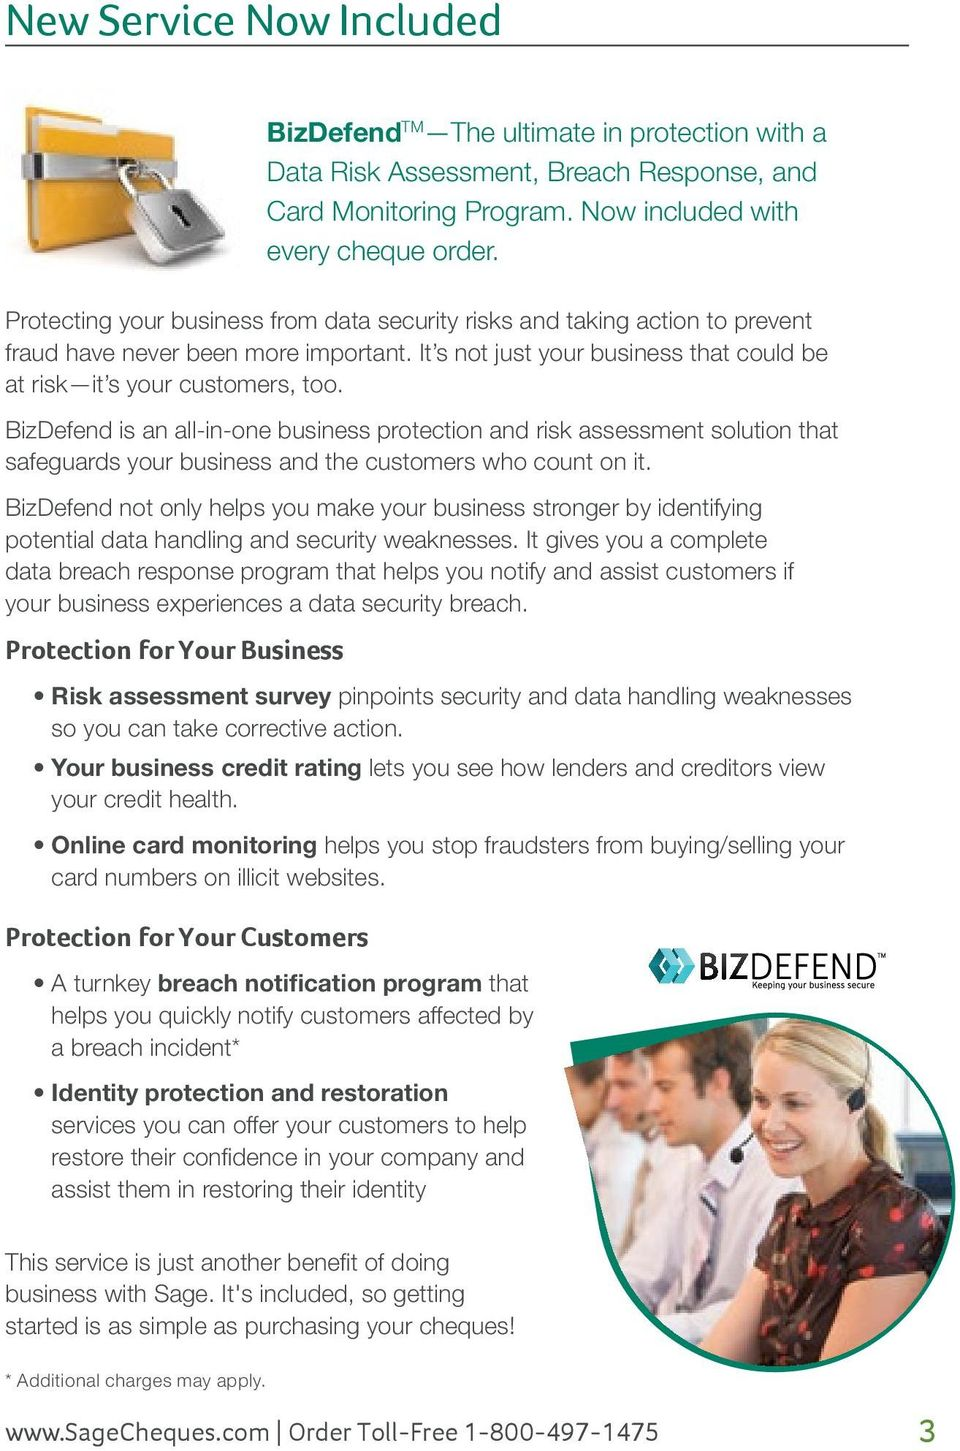 BizDefend is an all-in-one business protection and risk assessment solution that safeguards your business and the customers who count on it.